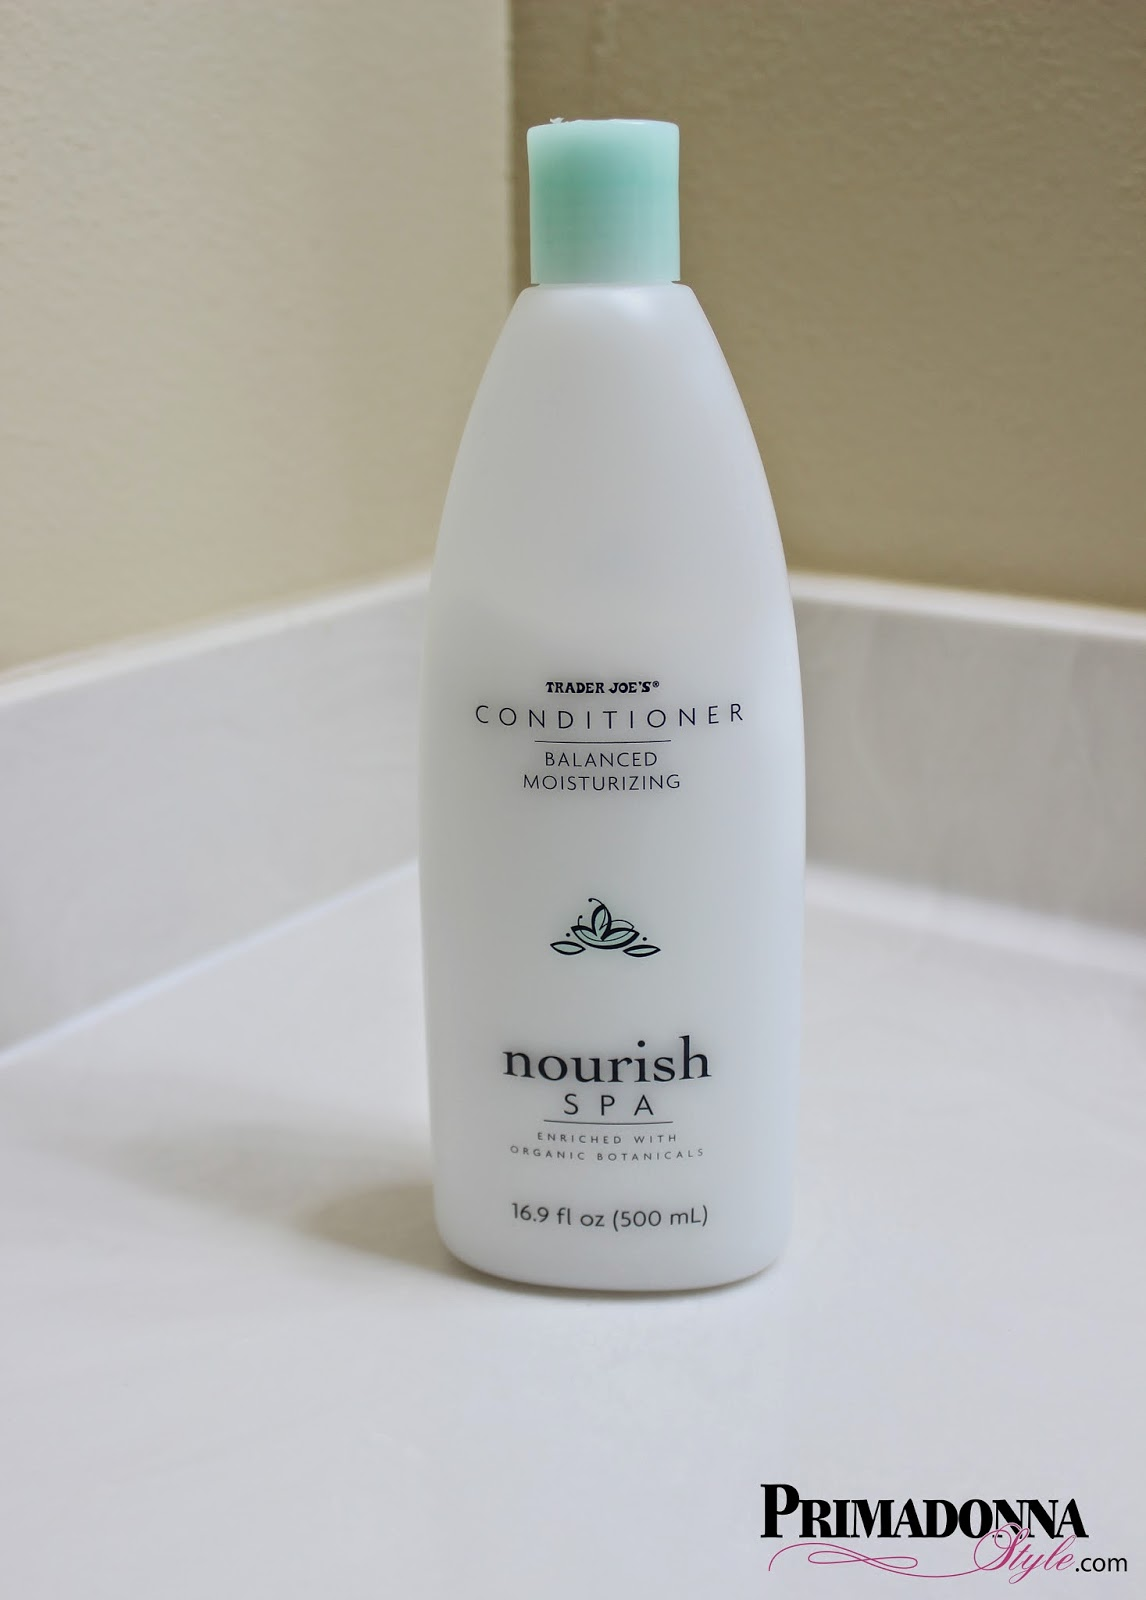 Trader Joe's Conditioner Balanced Moisturizing Nourish Spa